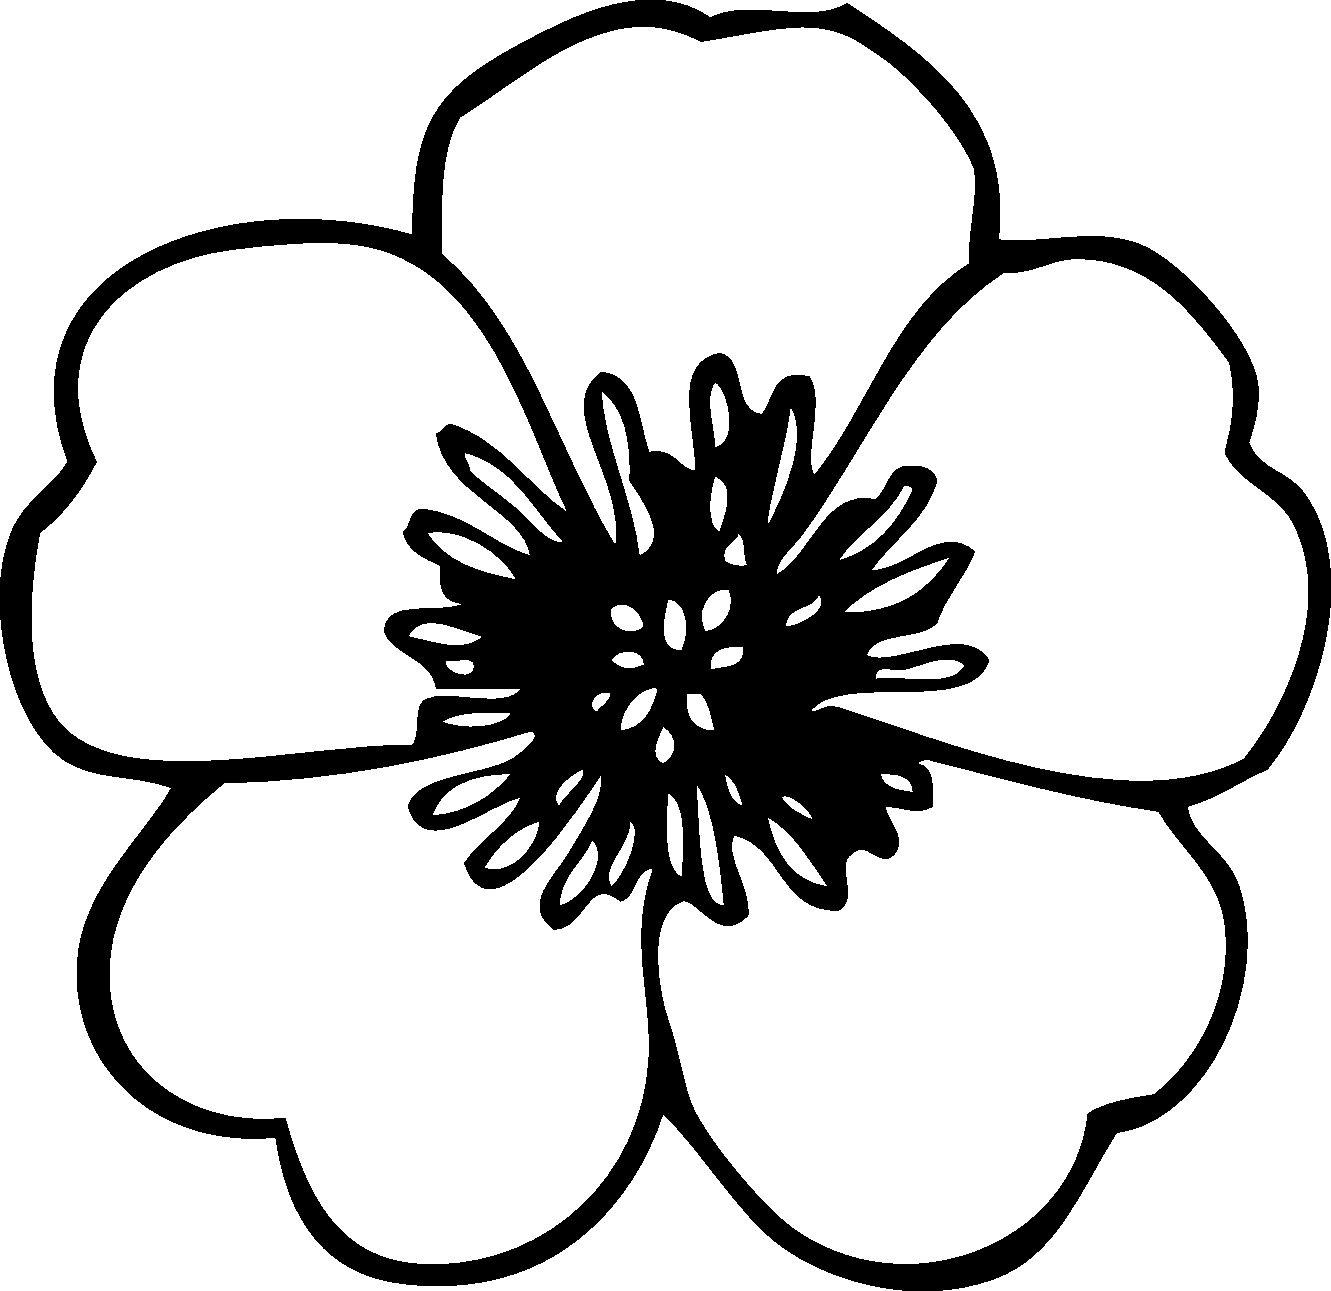 Black and white flower drawing at getdrawings free for 1331x1291 simple flower drawings in black and white black and white pictures mightylinksfo